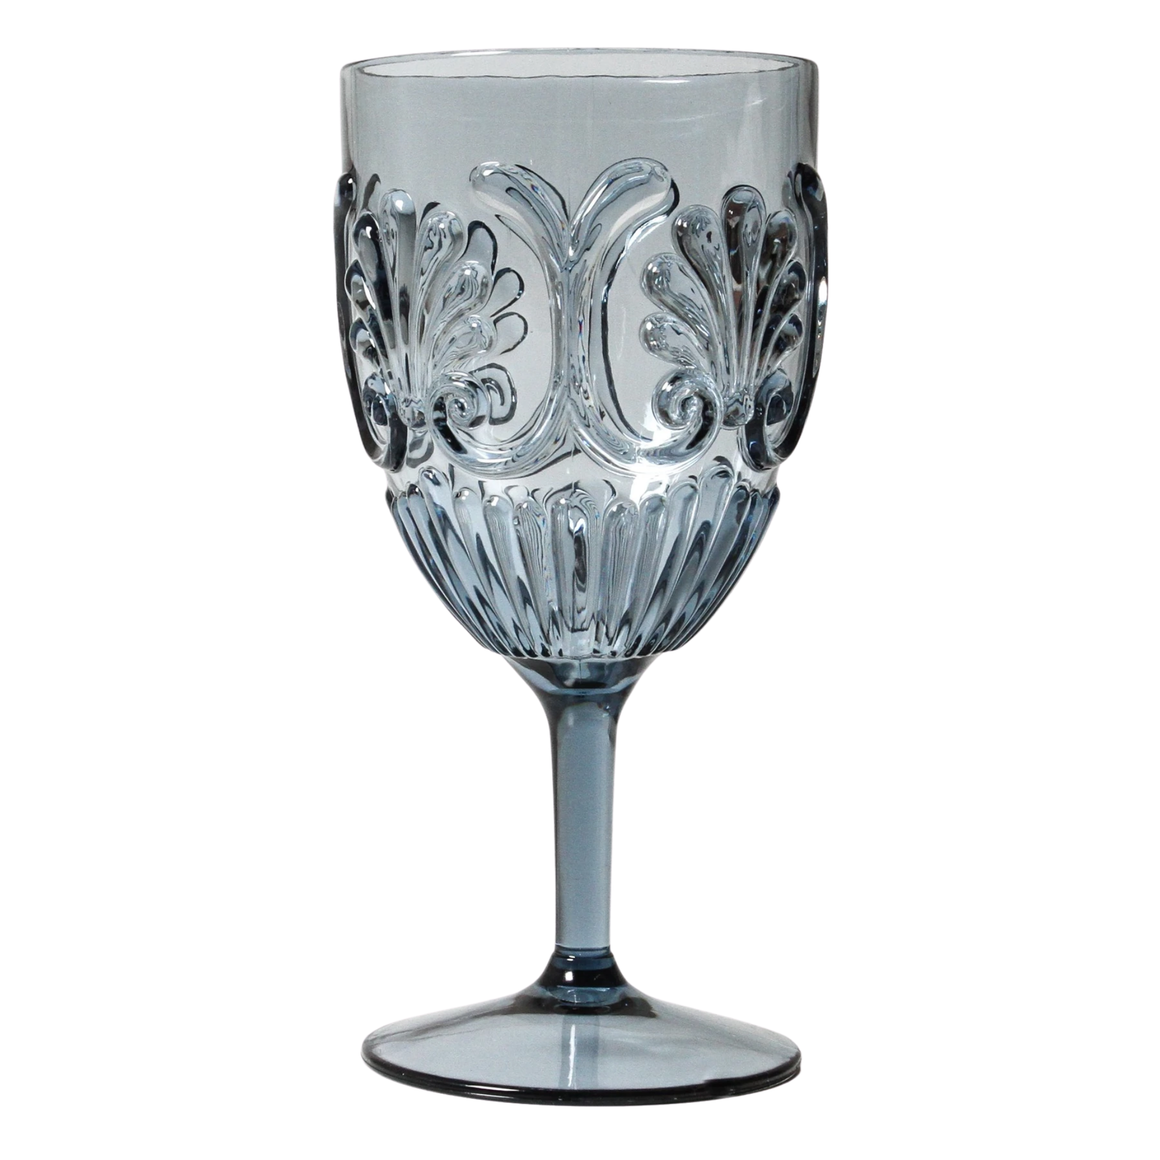 WINE GLASS ACRYLIC DEEP BLUE / STYLISH & STURDY